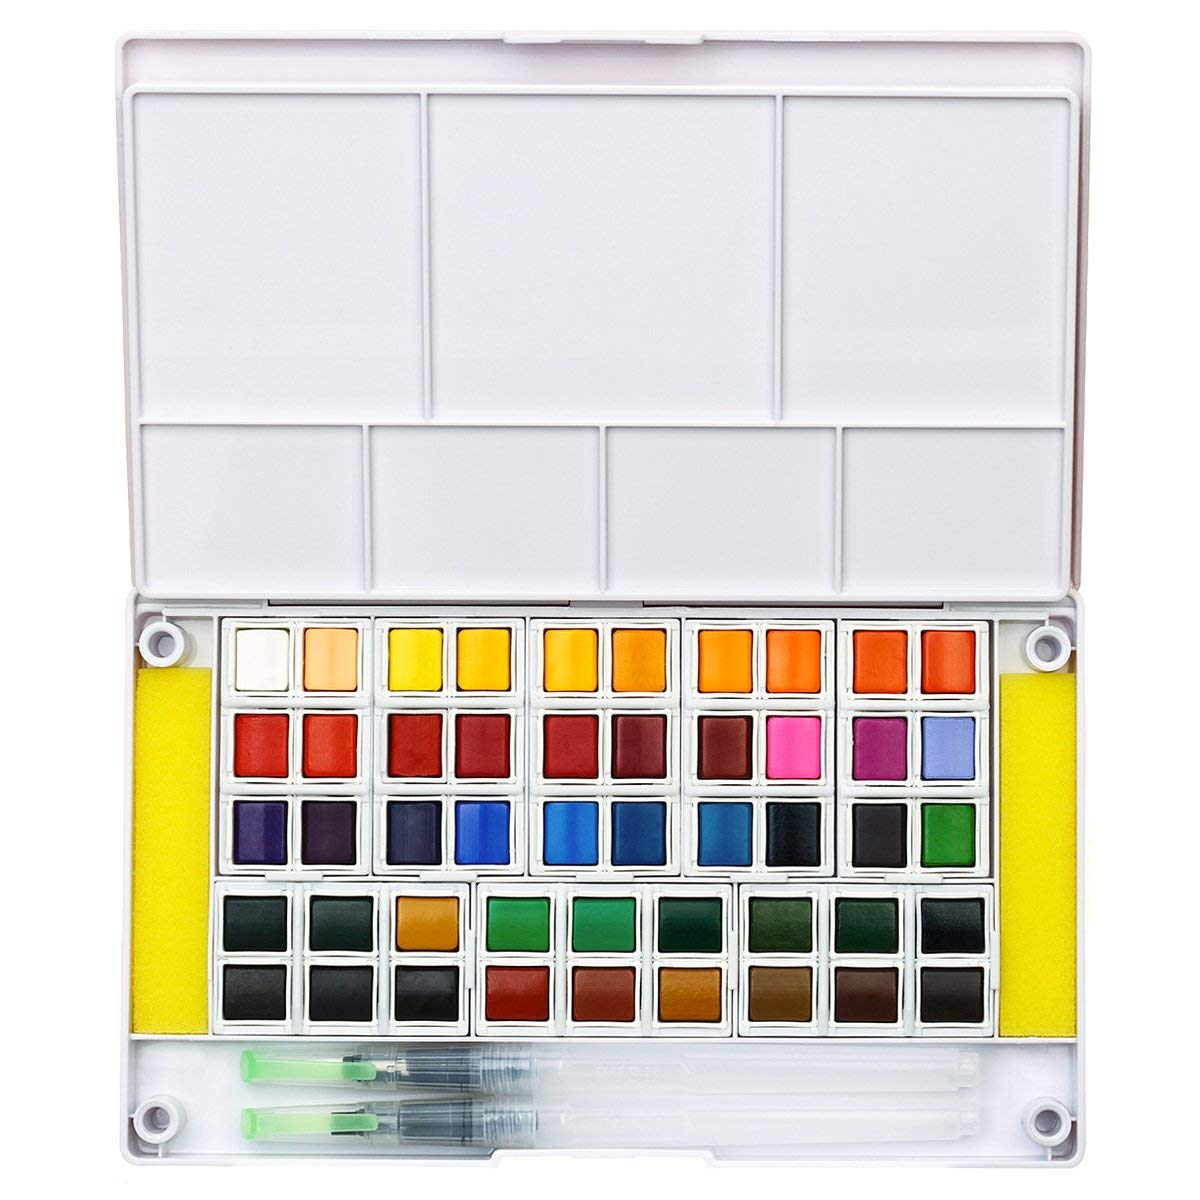 Professional Watercolor Paint Set - 48 Colors, Portable Travel Water Color Kit Includes 2 Water Brushes - 2 Sponges and Mixing Palette, Perfect for Budding Hobbyists, Artists